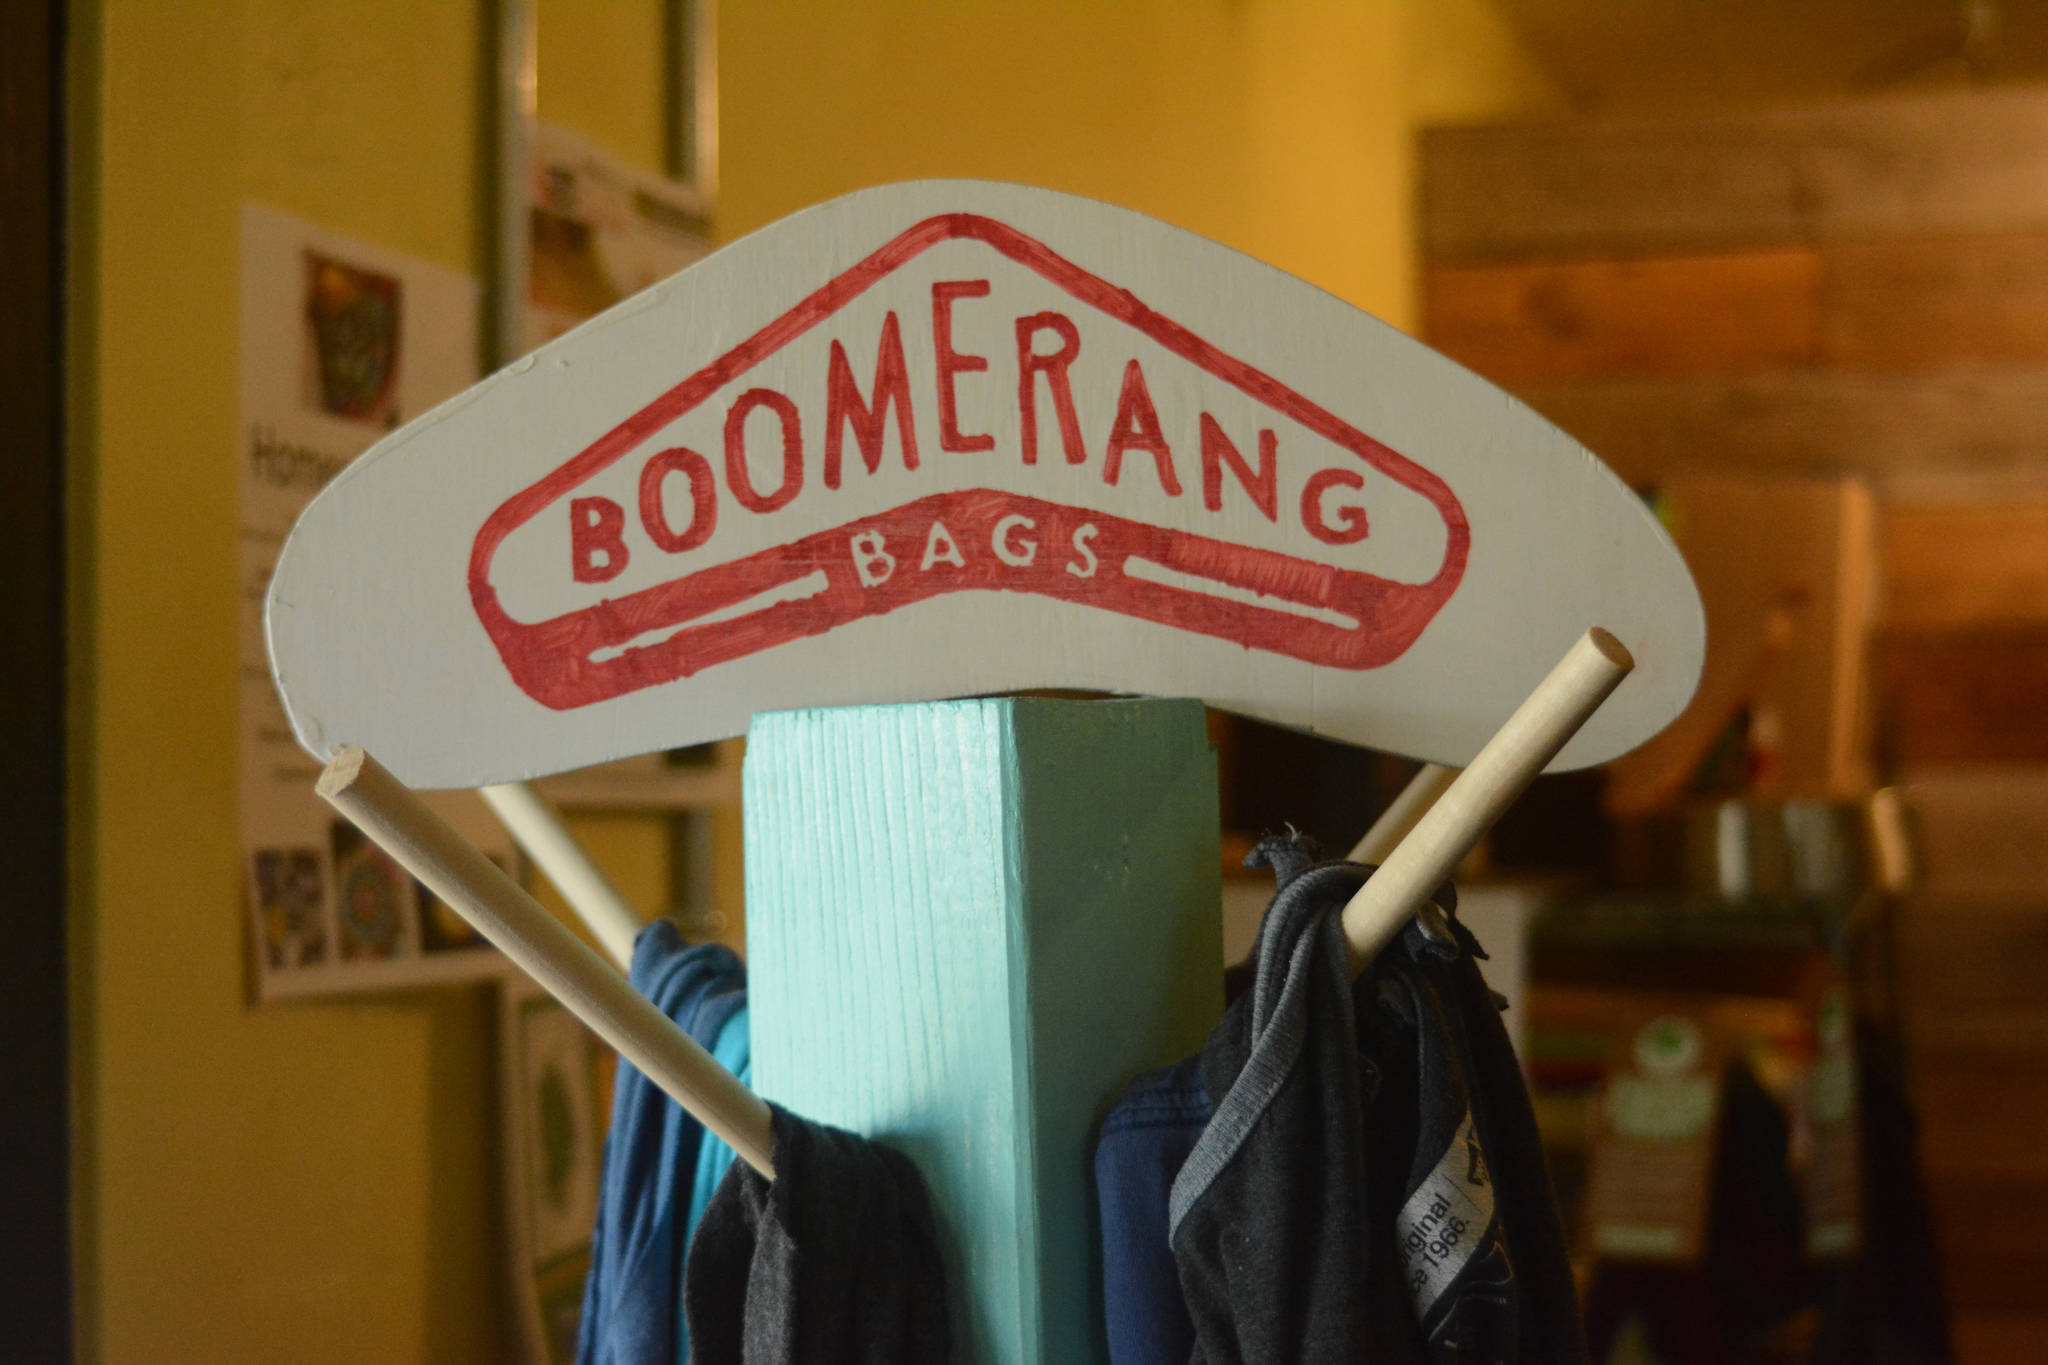 A display of Boomerang Bags is available at Sustainable Wares, shown here Tuesday, Sept. 25, 2018 on Ocean Drive in Homer, Alaska. Store owner Karen West said that people have been regularly using the bags. (Photo by Michael Armstrong/Homer News)